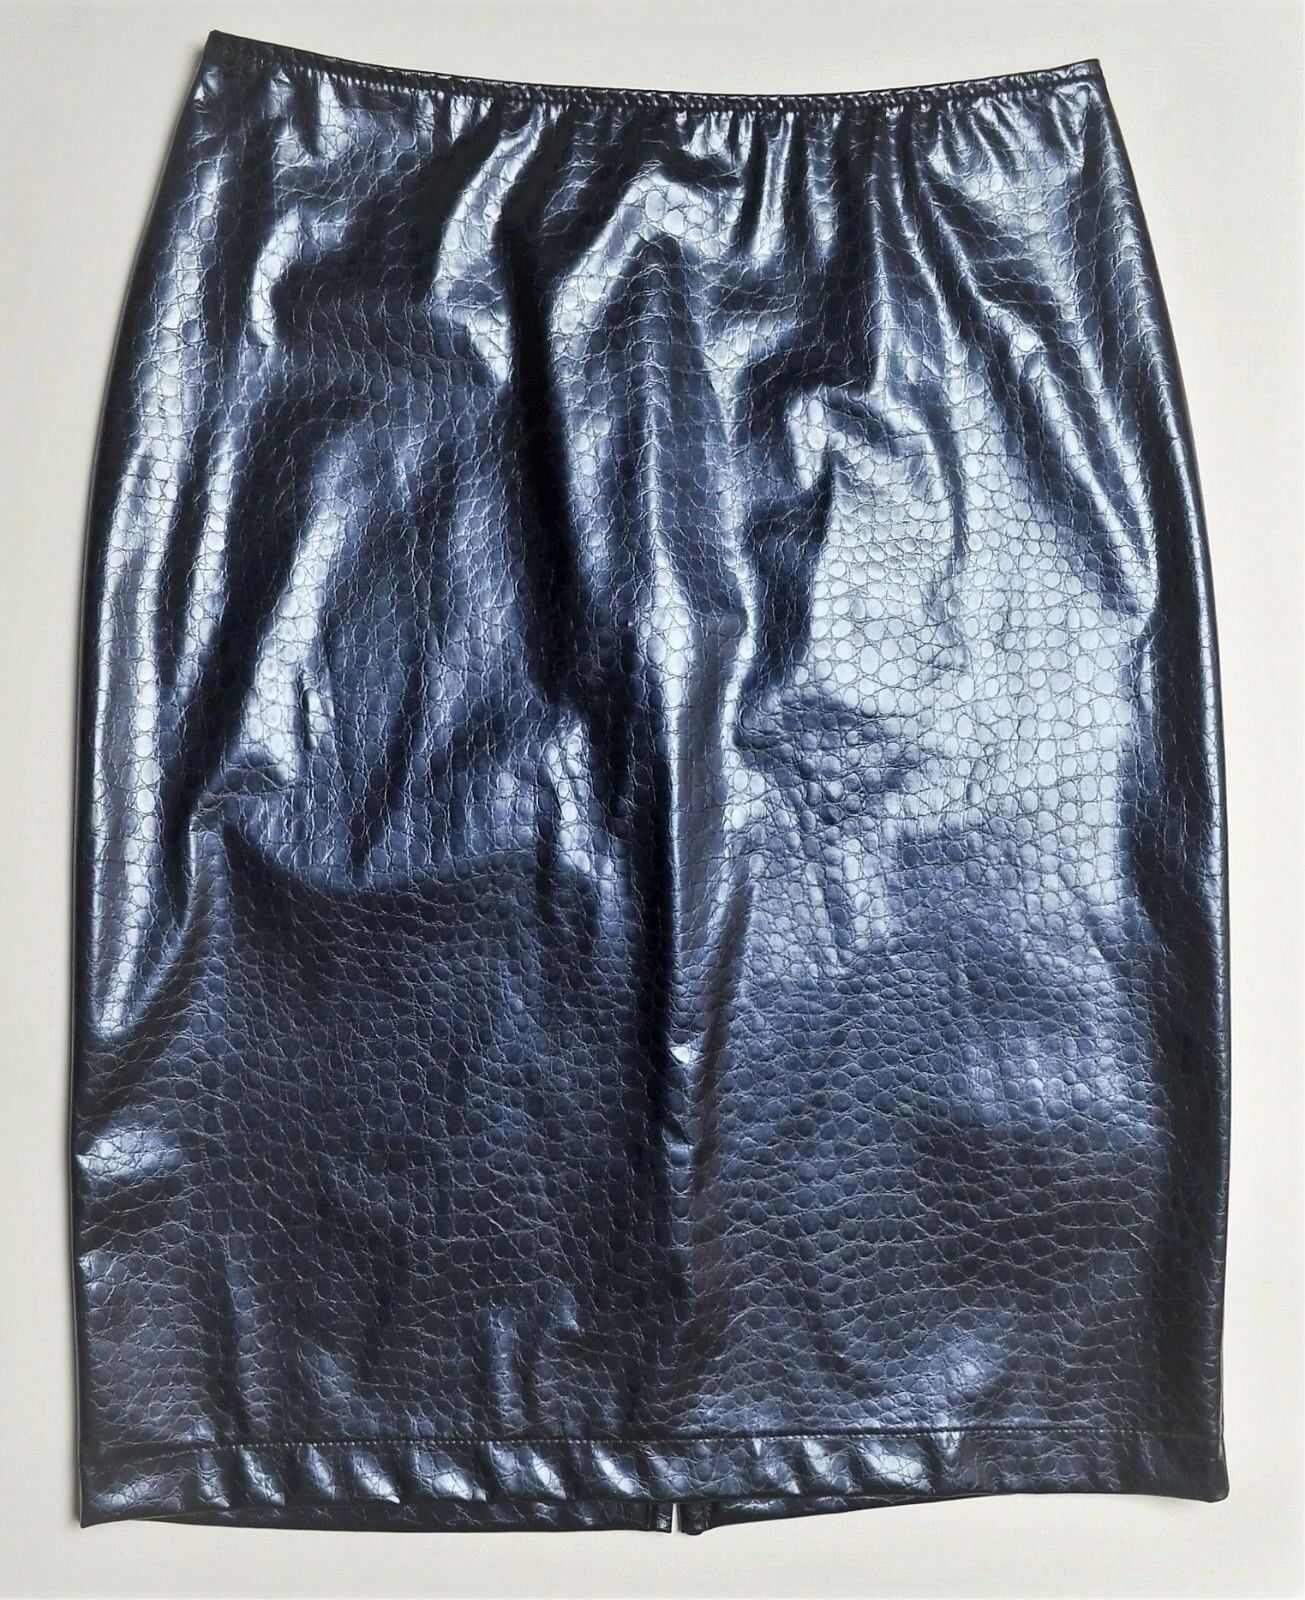 TRUSSARDI JEANS Faux Patent Leather Crocodile Patterned Pencil Skirt S M 42 bluee